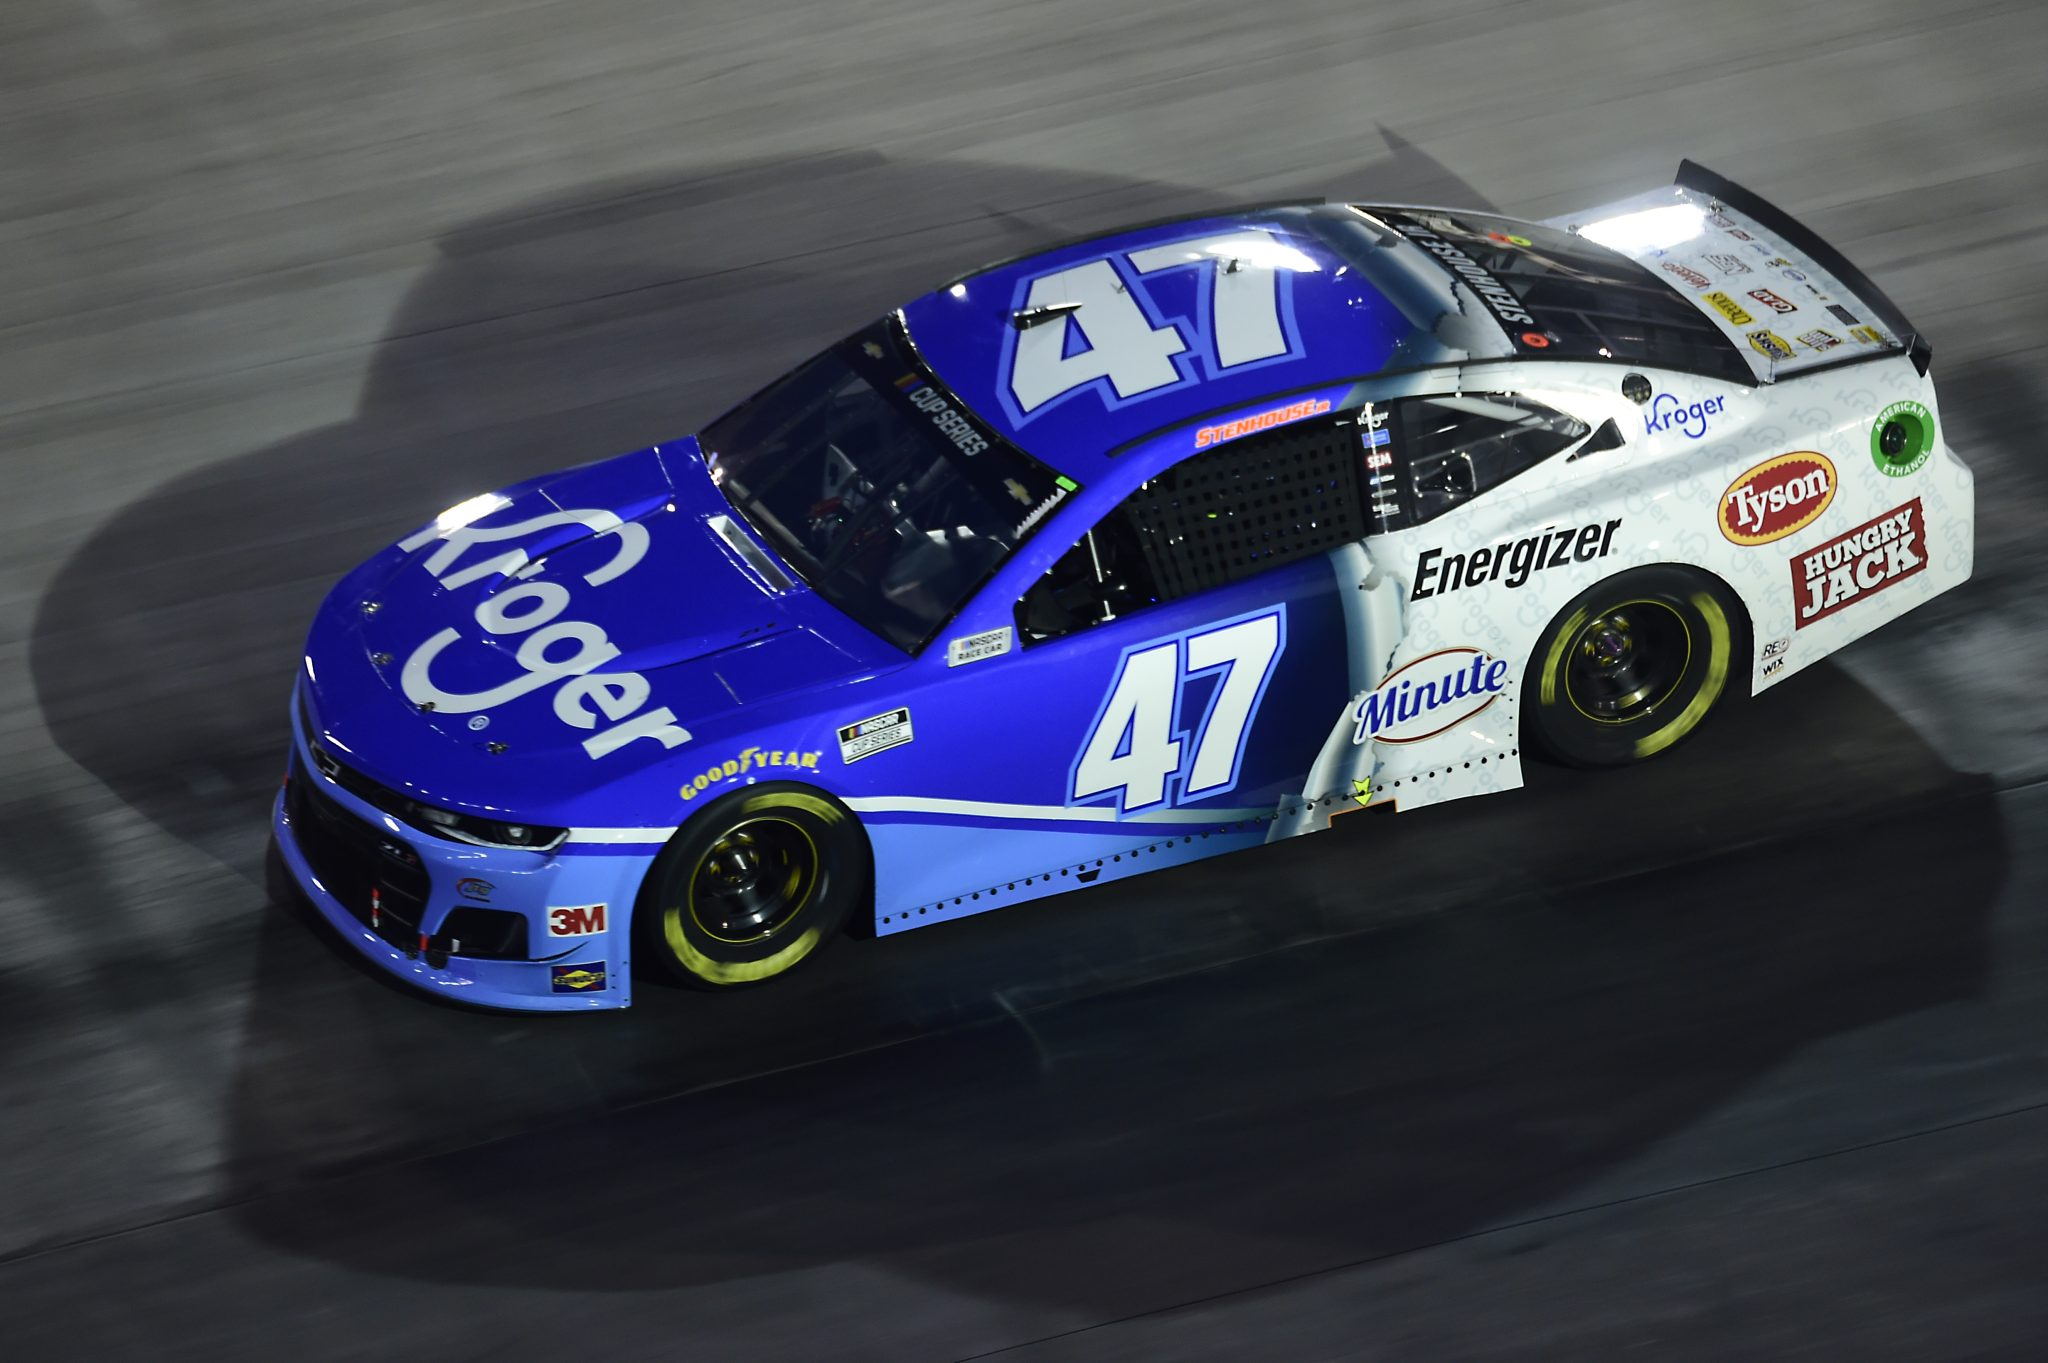 BRISTOL, TENNESSEE - SEPTEMBER 19: Ricky Stenhouse Jr., driver of the #47 Kroger Chevrolet, drives during the NASCAR Cup Series Bass Pro Shops Night Race at Bristol Motor Speedway on September 19, 2020 in Bristol, Tennessee. (Photo by Jared C. Tilton/Getty Images) | Getty Images